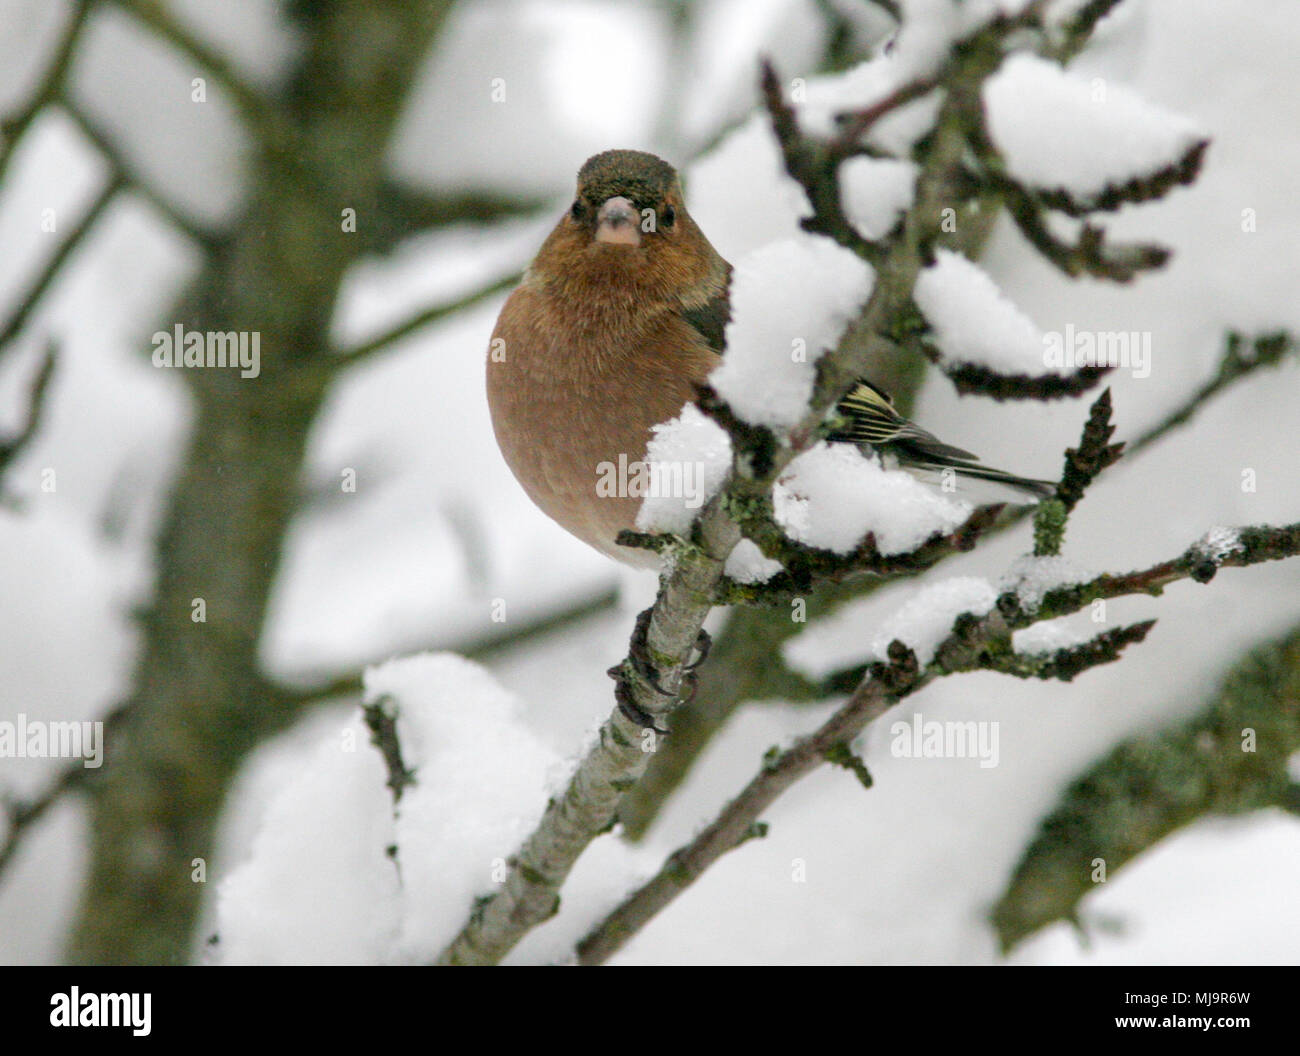 COMMON CHAFFINCH 2013 - Stock Image